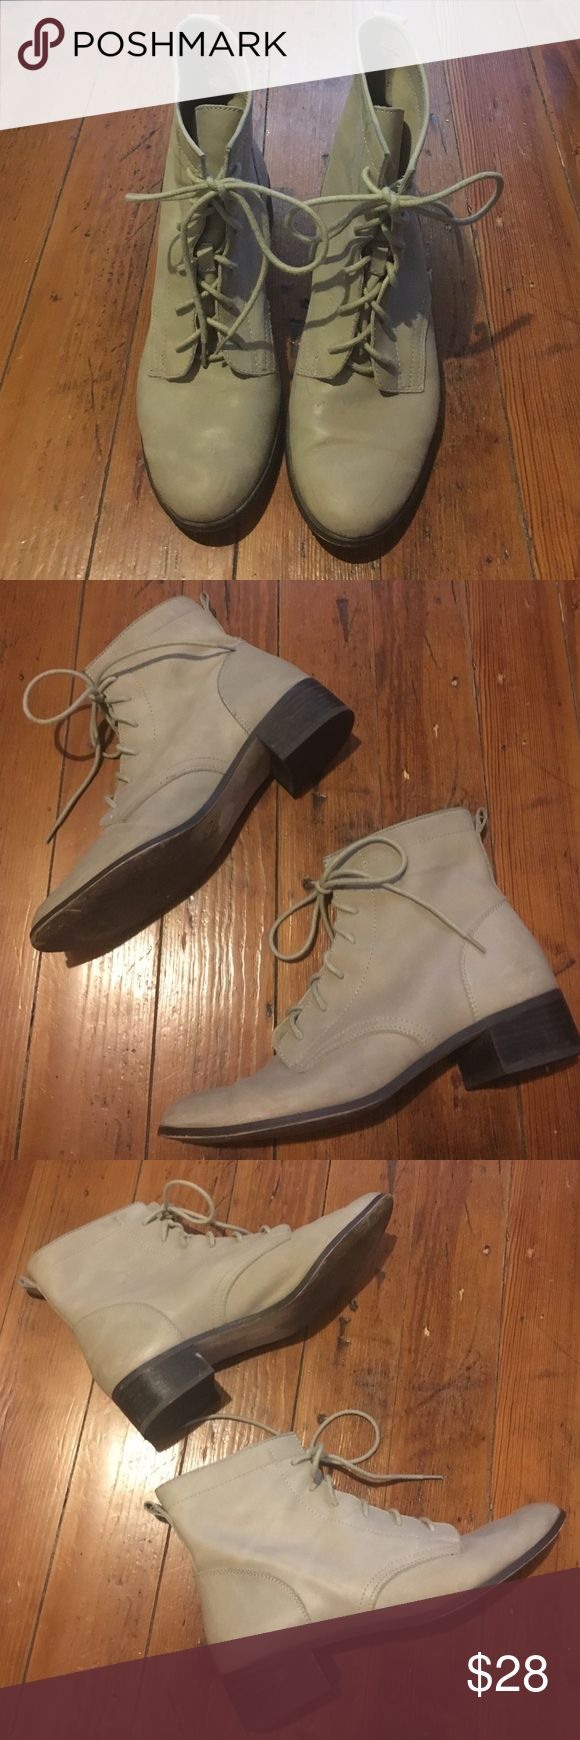 Seychelles Boots Beautiful lace-up soft leather boots. Almost look vintage! Seychelles Shoes Ankle Boots & Booties